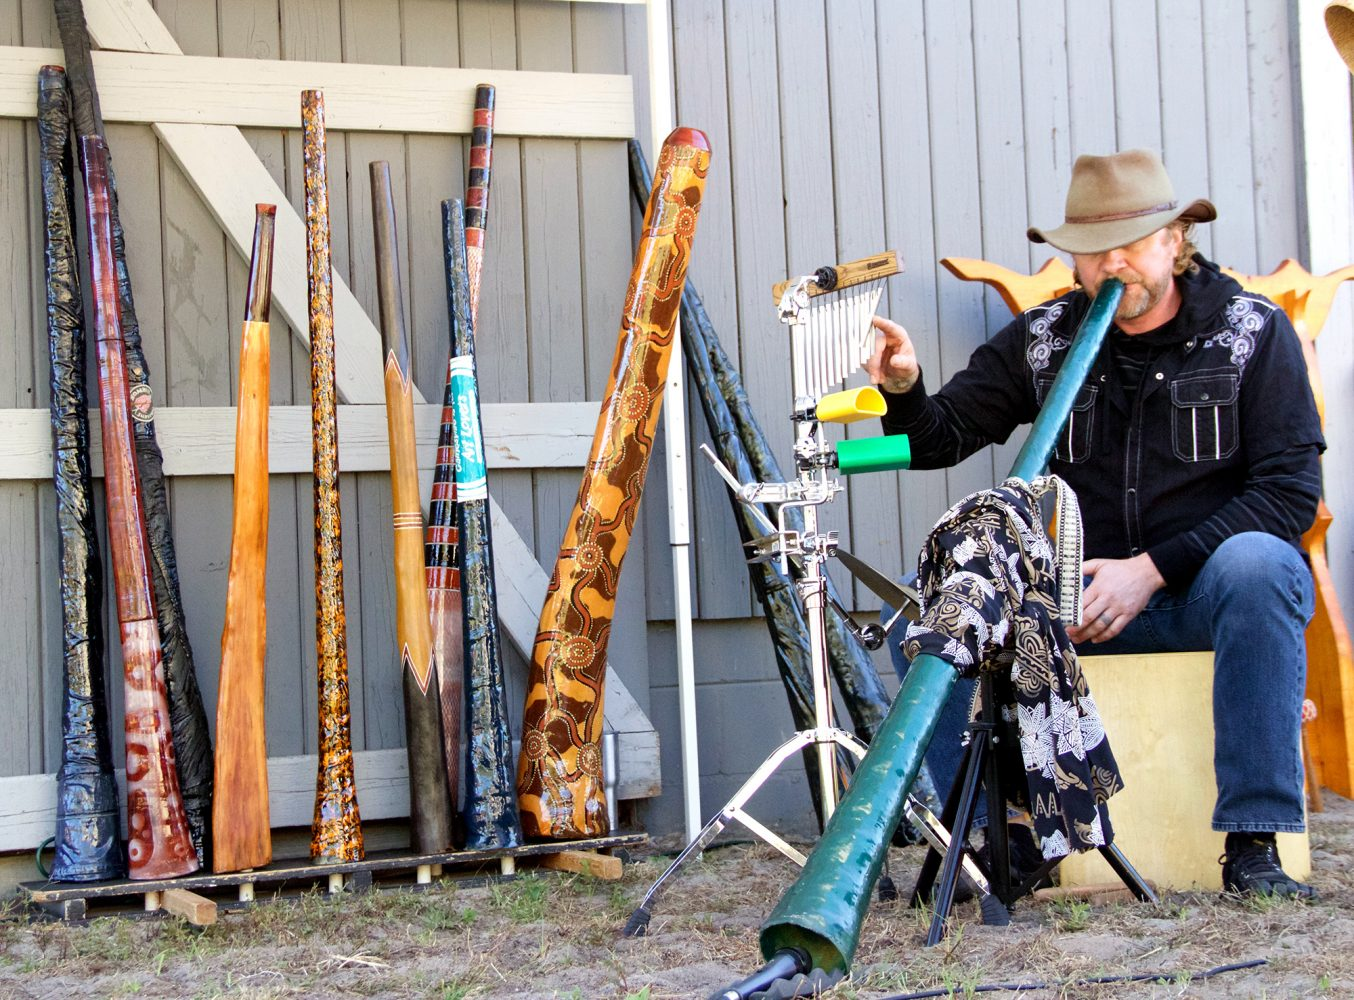 Lindsey Dank plays a didgeridoo at the festival Saturday. Dank said he enjoys interacting with the children and teaching them how to play. (Vedrana Damjanovic/WUFT News)